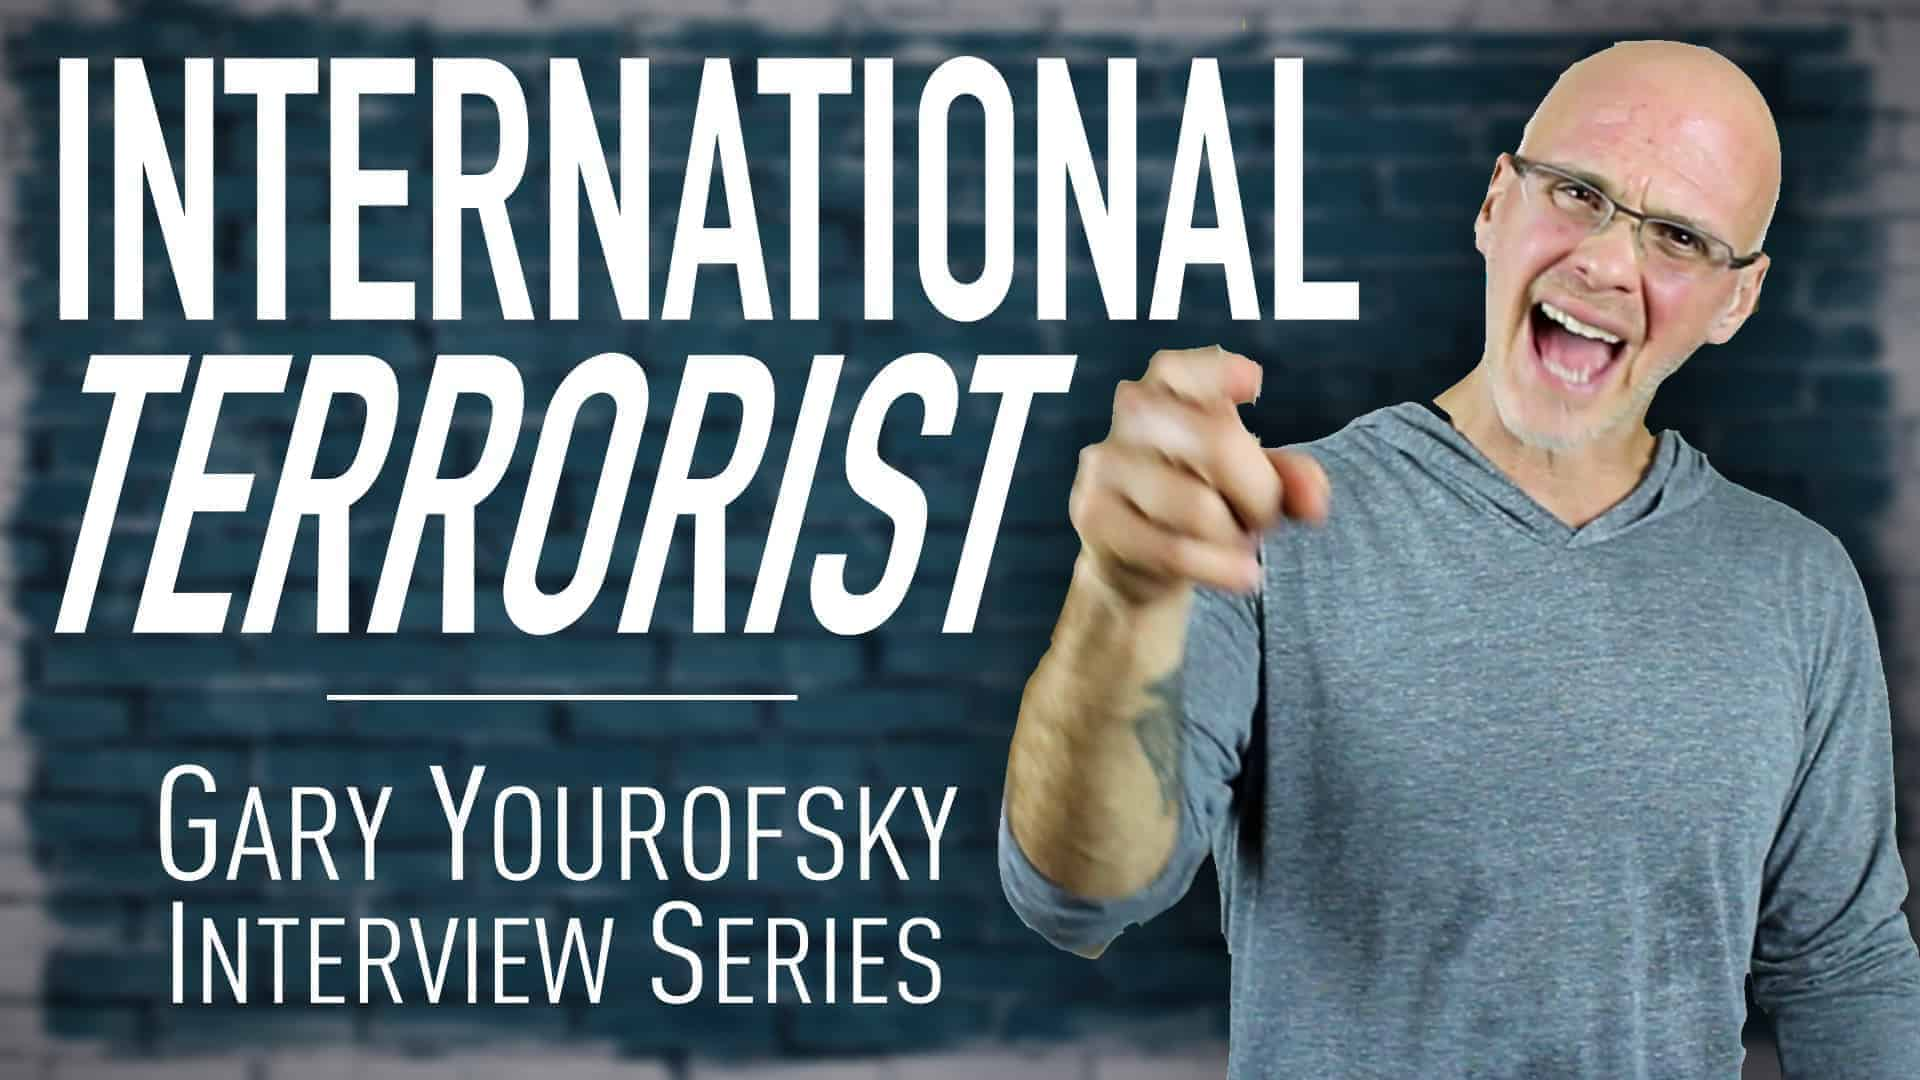 """Author and vegan activist Gary Yourofsky is shown along side the words """"International Terrorist - Gary Yourofsky interview series"""""""